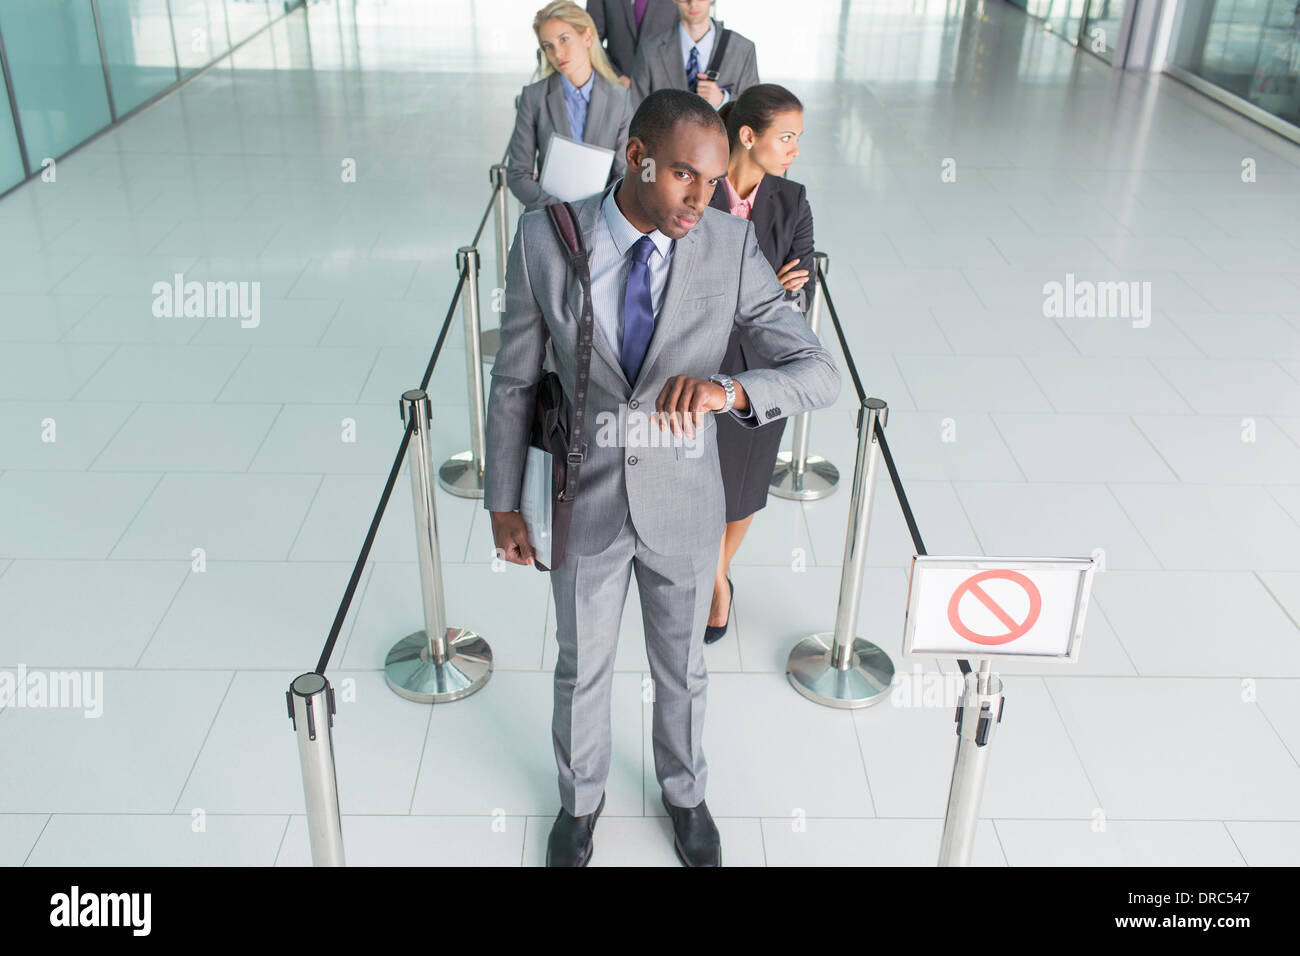 Businessman waiting in line - Stock Image